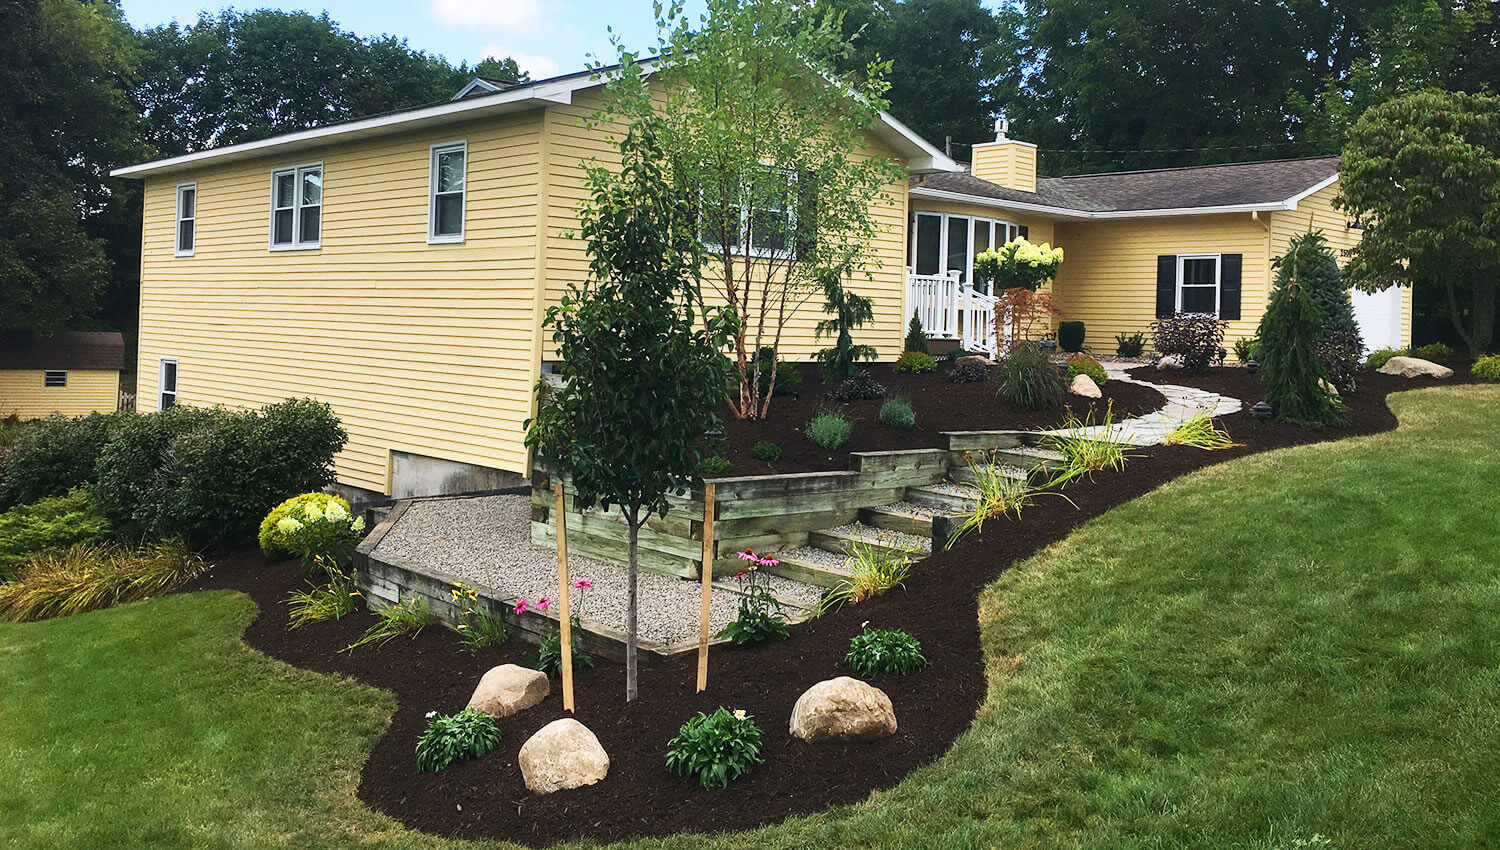 Outdoor Landscape Design-Allen TX Professional Landscapers & Outdoor Living Designs-We offer Landscape Design, Outdoor Patios & Pergolas, Outdoor Living Spaces, Stonescapes, Residential & Commercial Landscaping, Irrigation Installation & Repairs, Drainage Systems, Landscape Lighting, Outdoor Living Spaces, Tree Service, Lawn Service, and more.